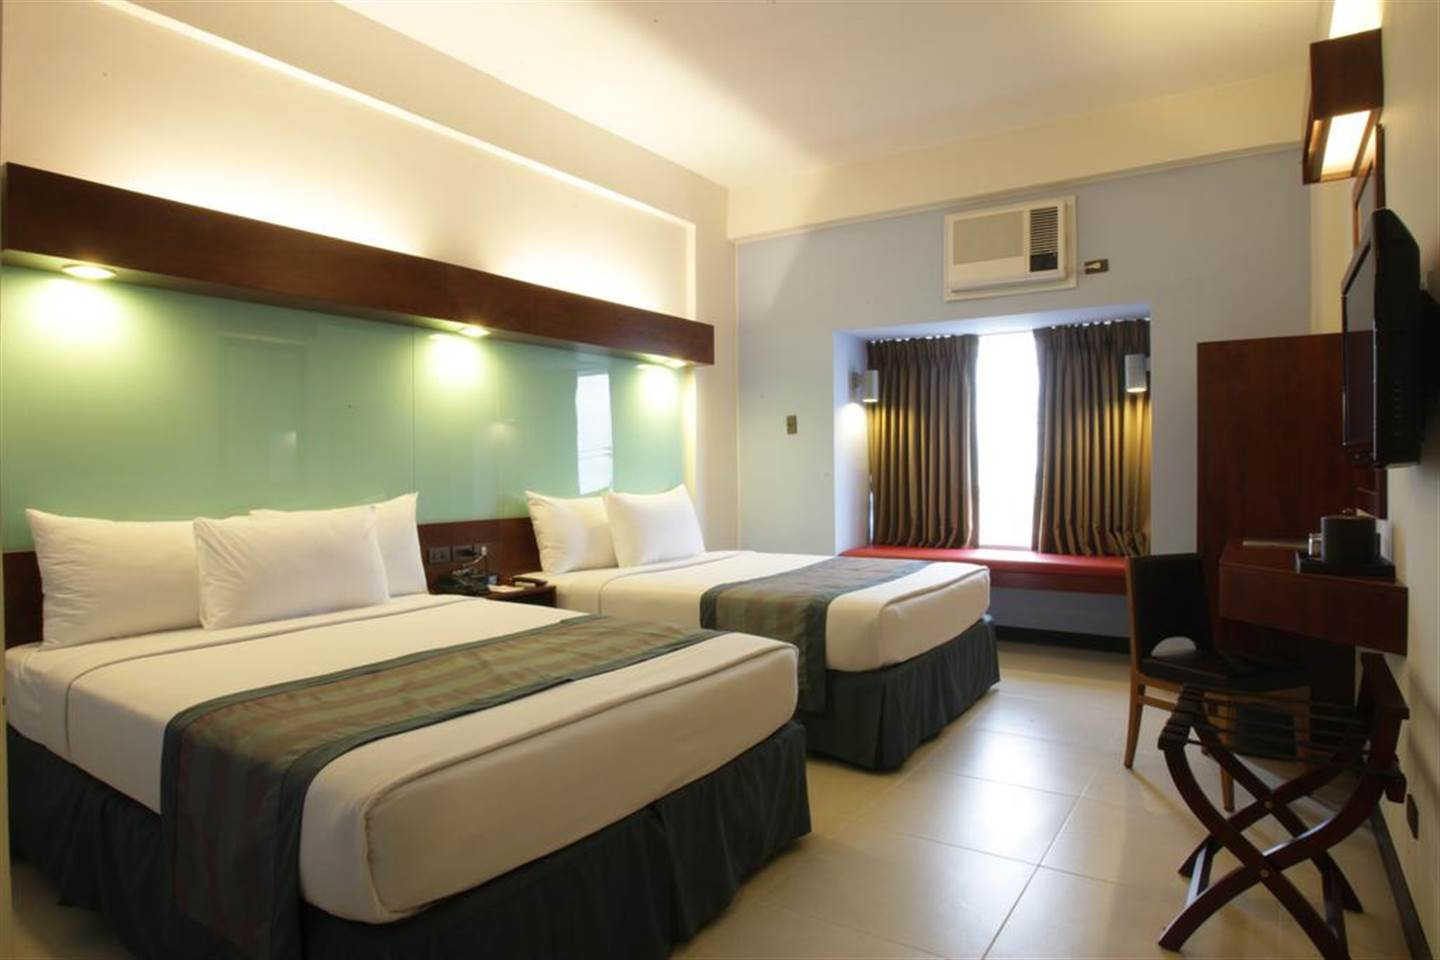 2 Queen Beds Room - Mall of Asia